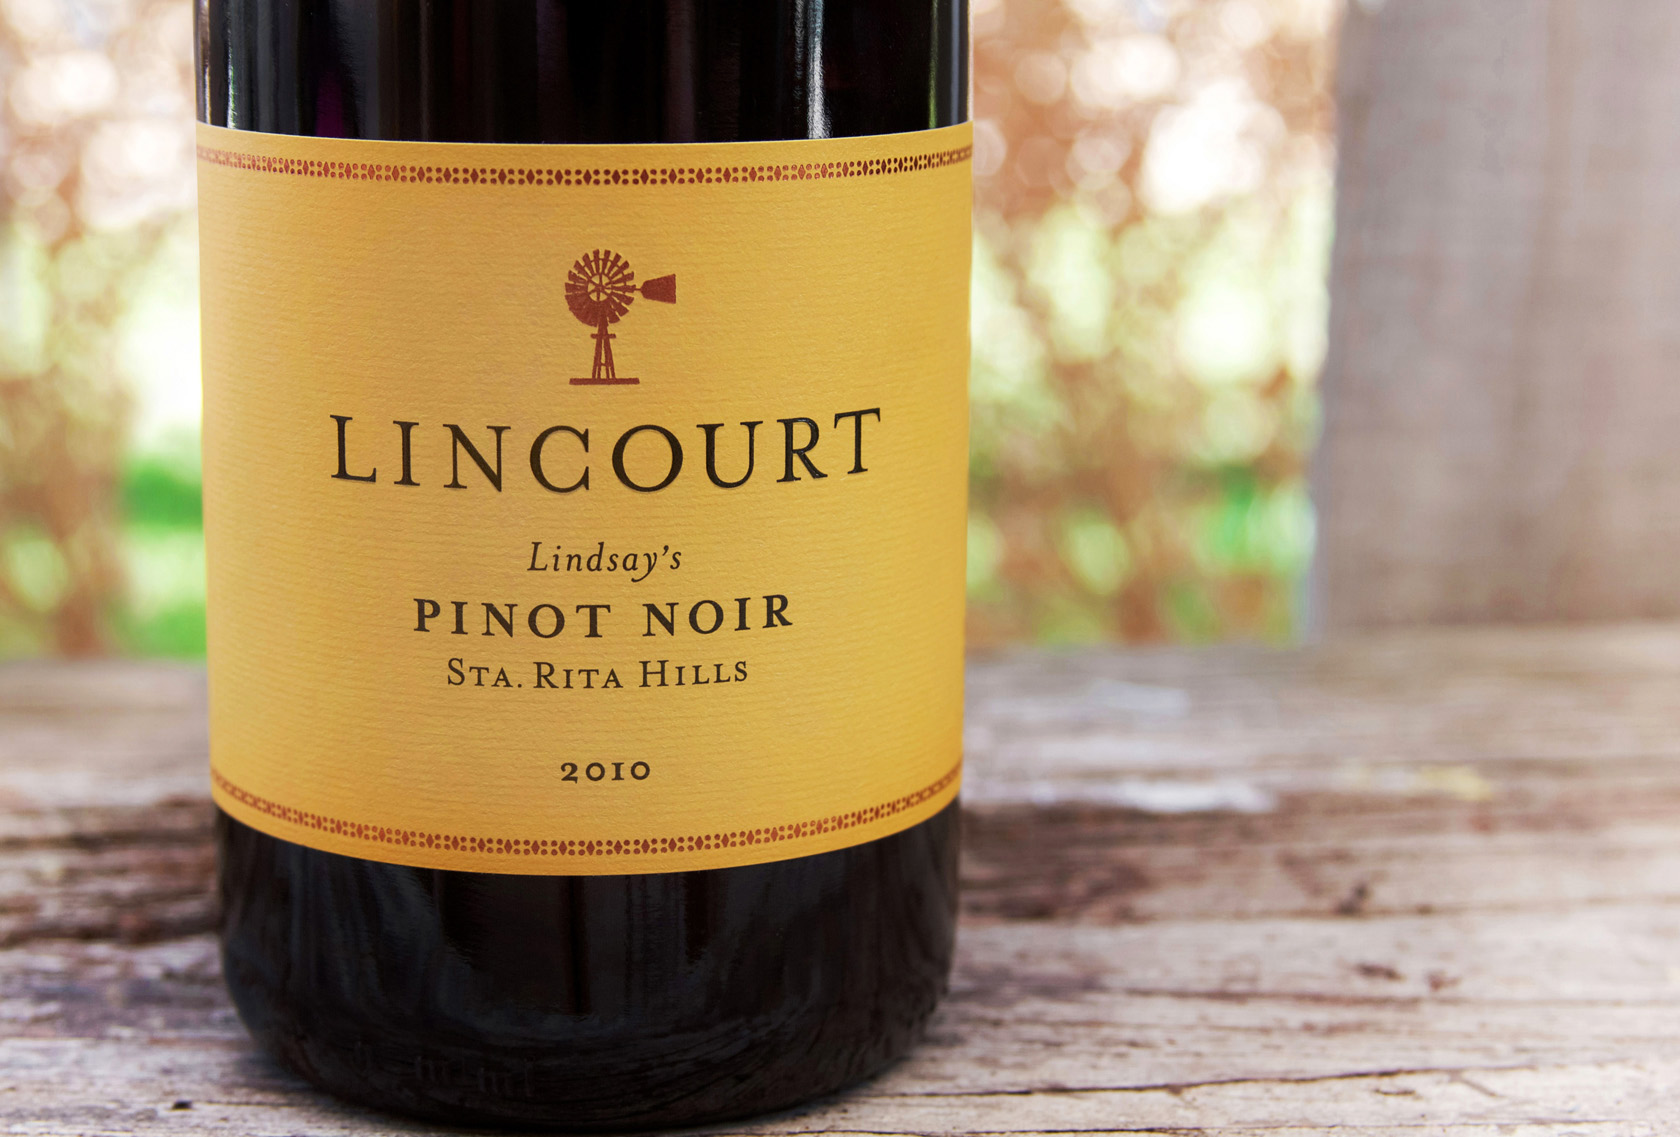 2010 Lincourt Lindsay's Pinot Noir